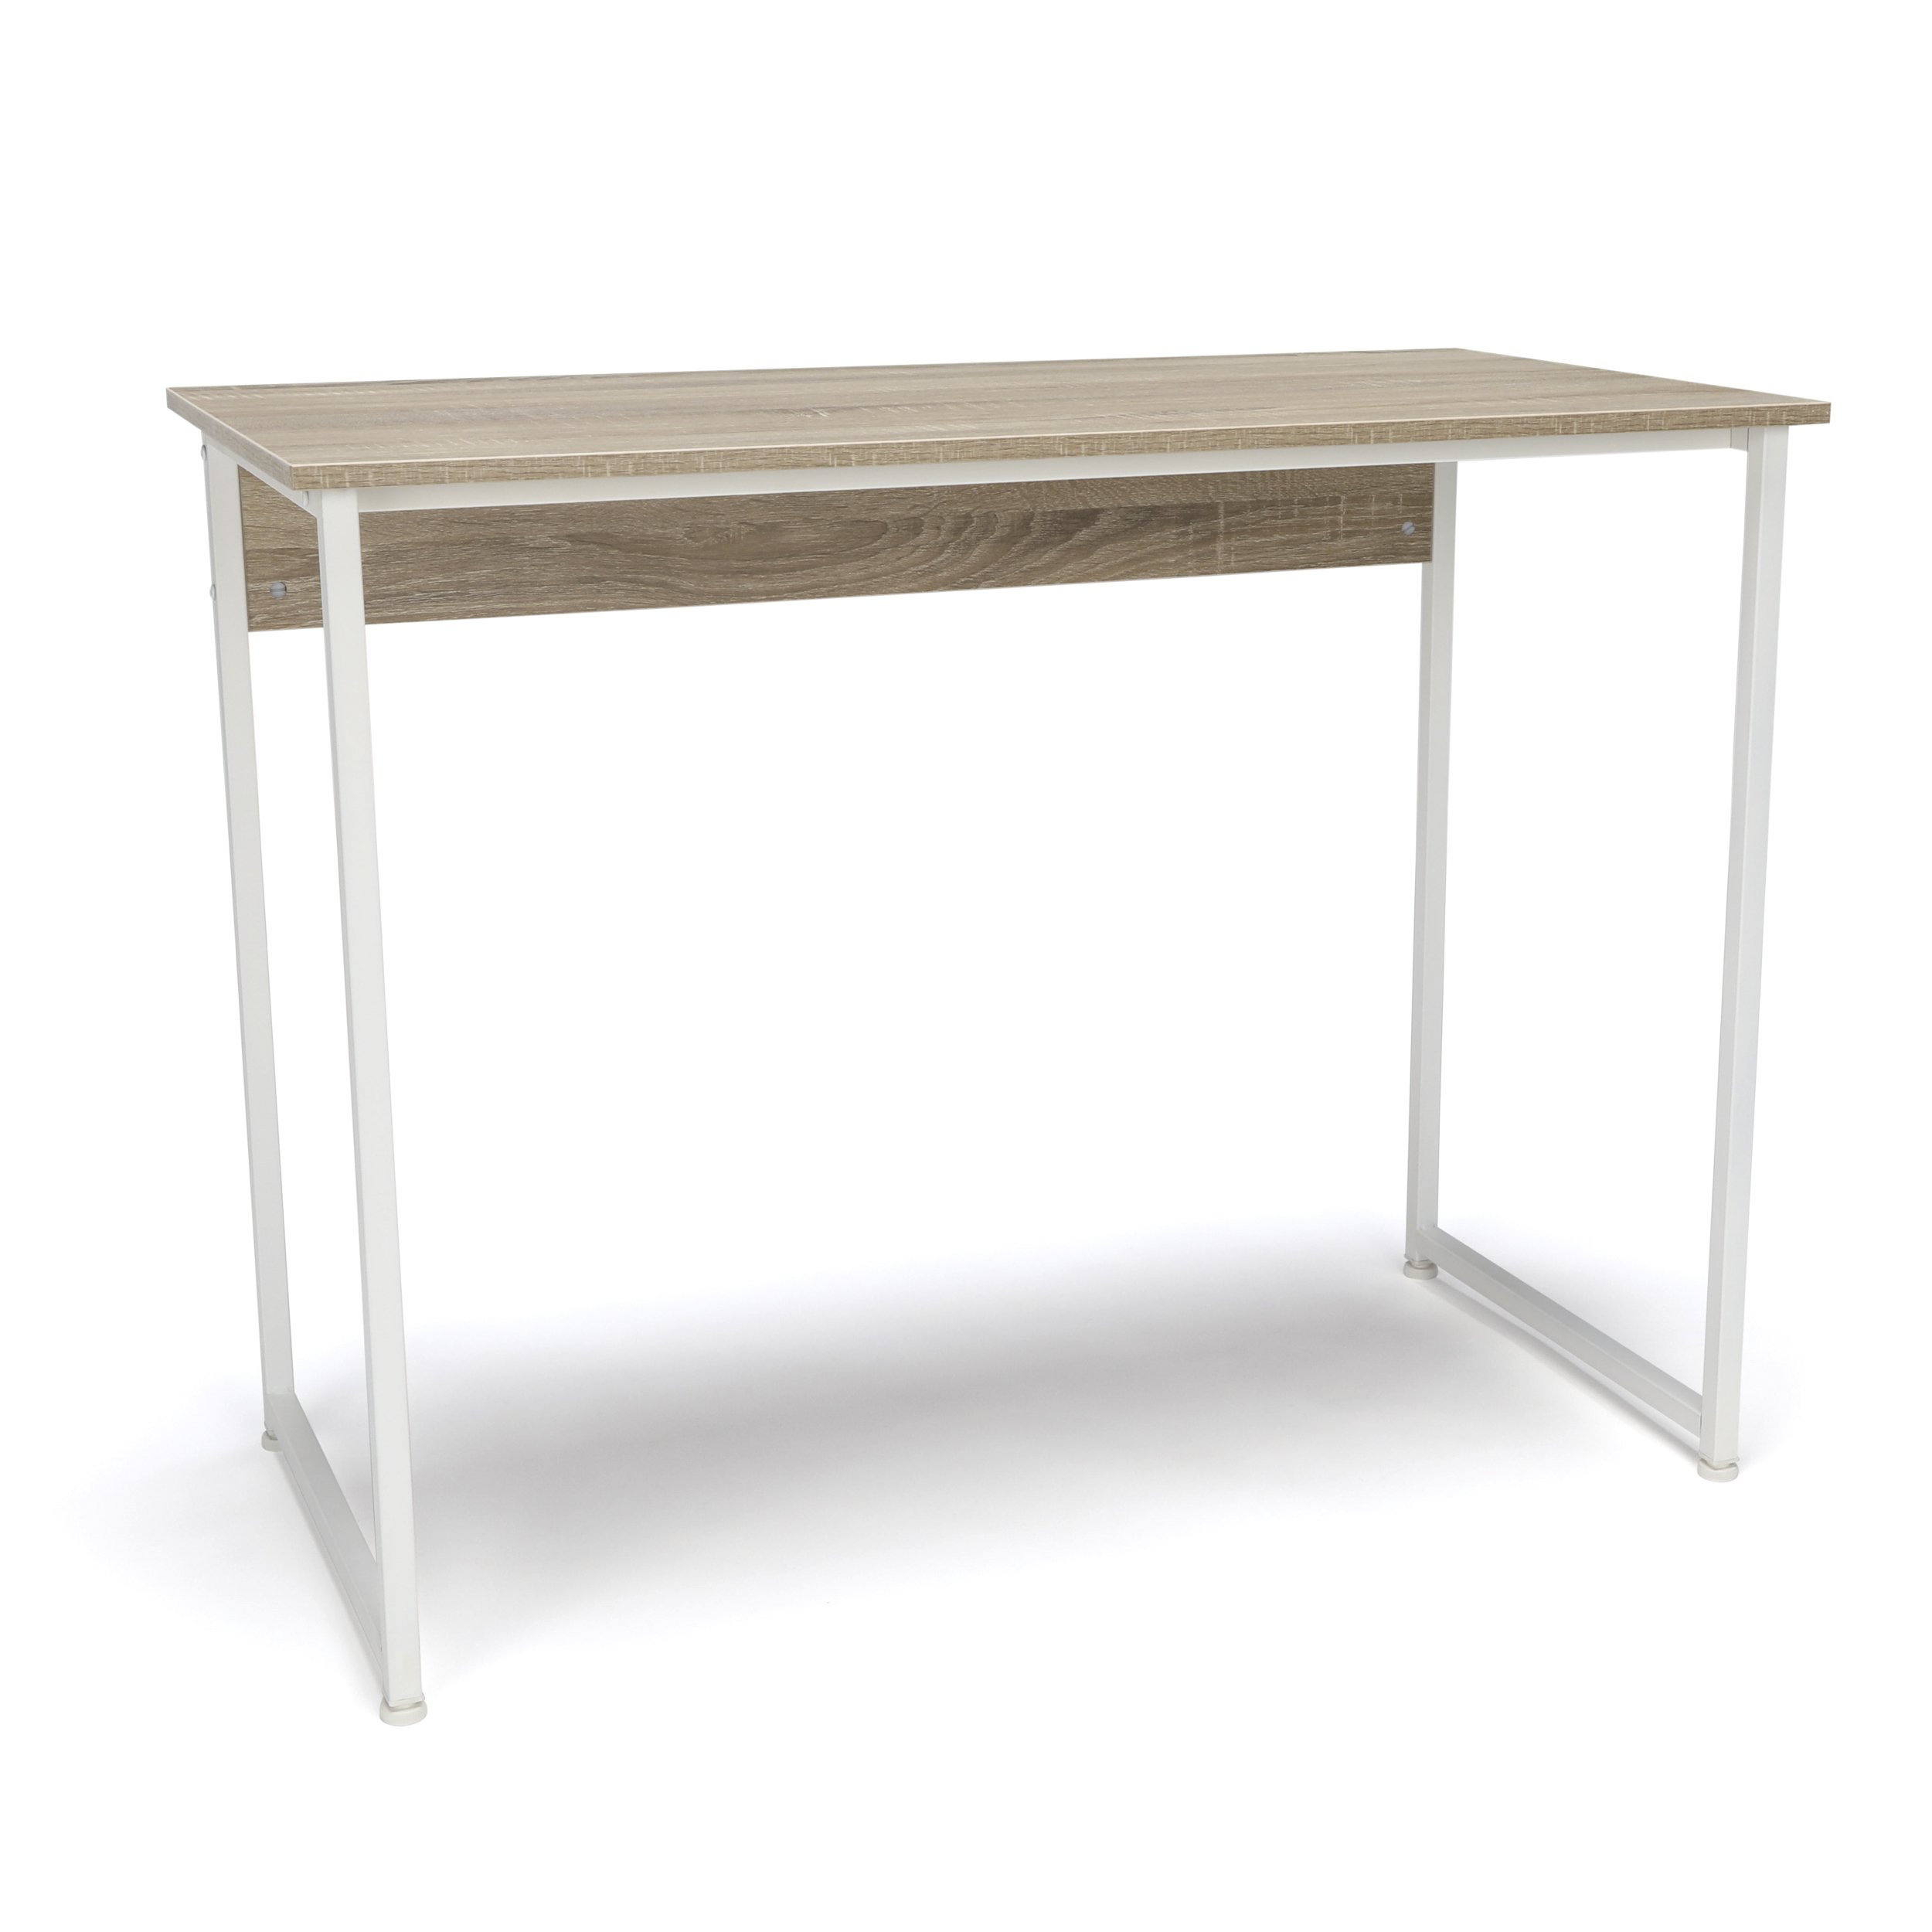 Essentials Office Desk with Metal Legs - Modern Computer Desk and Workstation, White/Natural (ESS-1040-WHT-NAT)